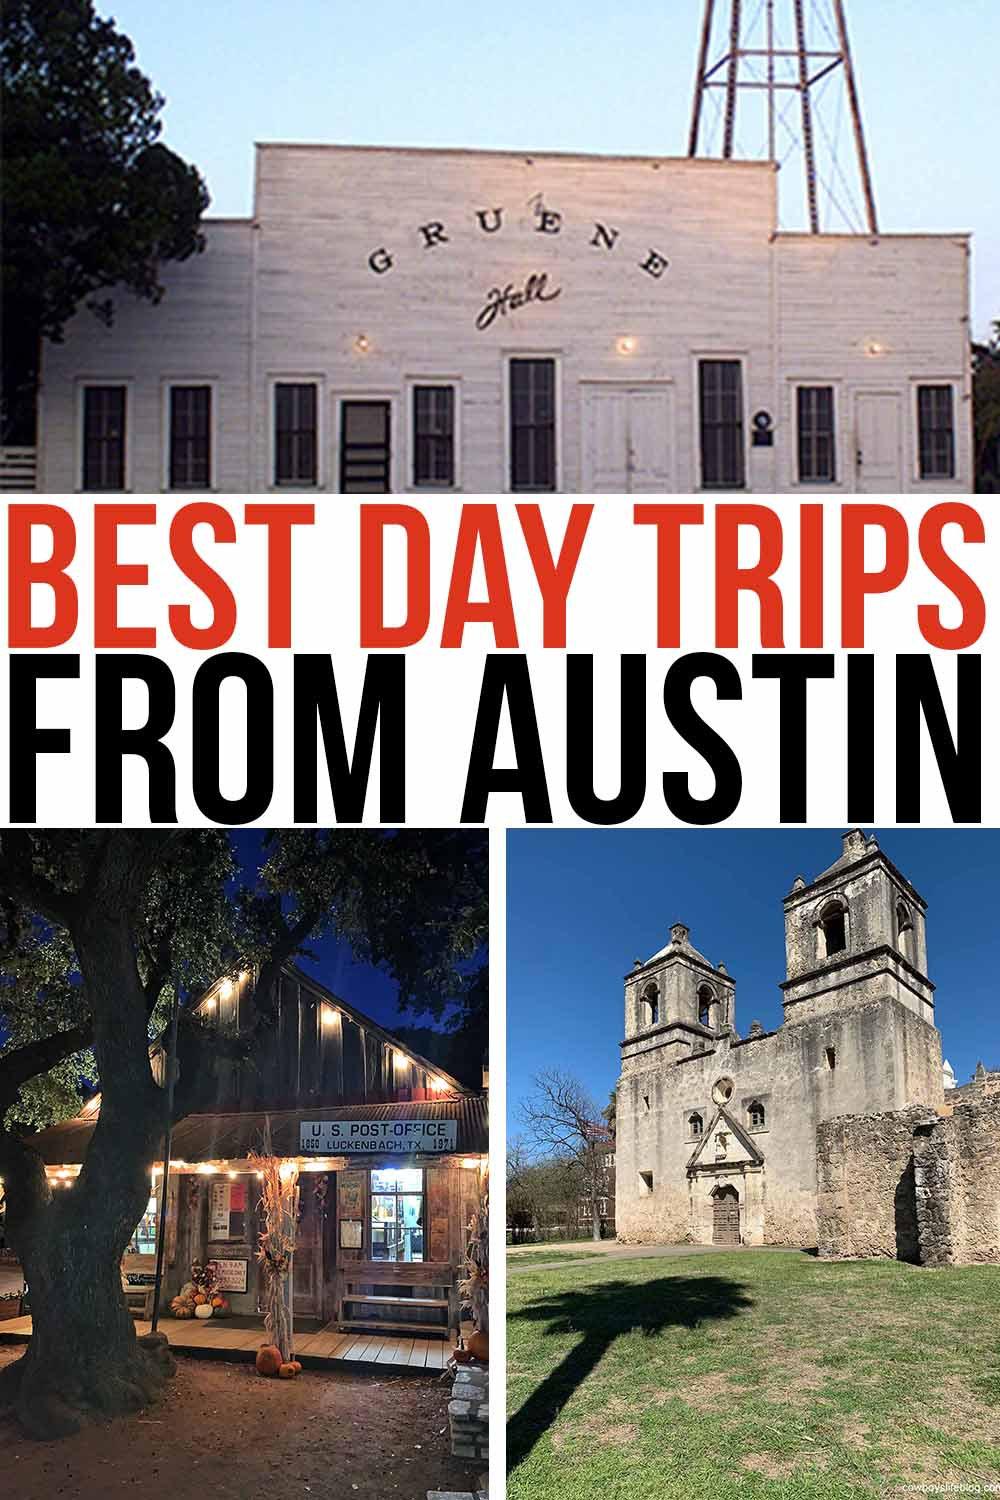 best day trips from Austin